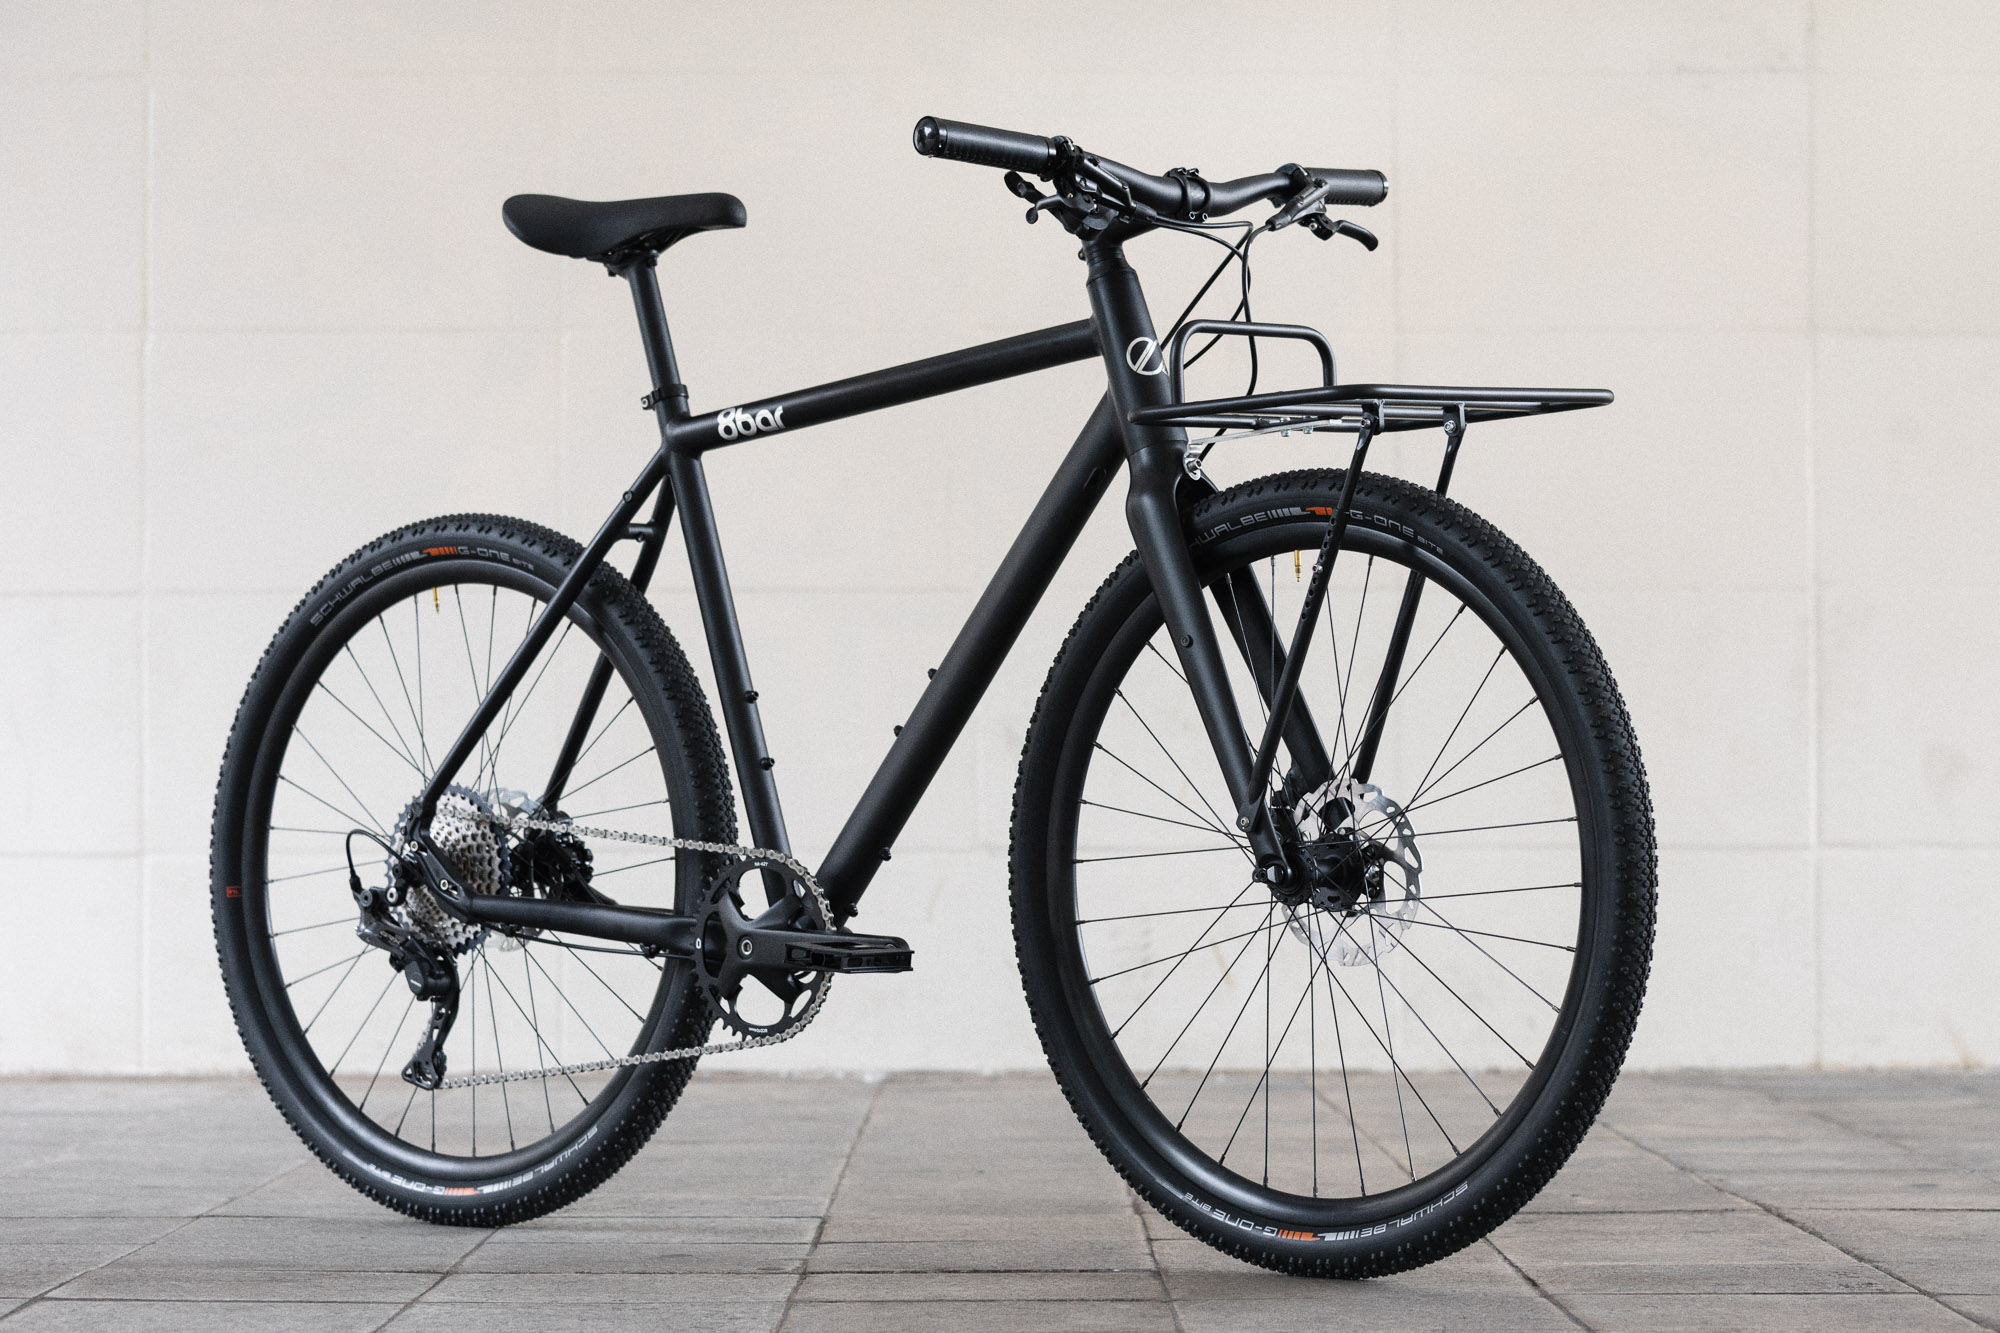 8bar complete bike mitte black urban lr-3